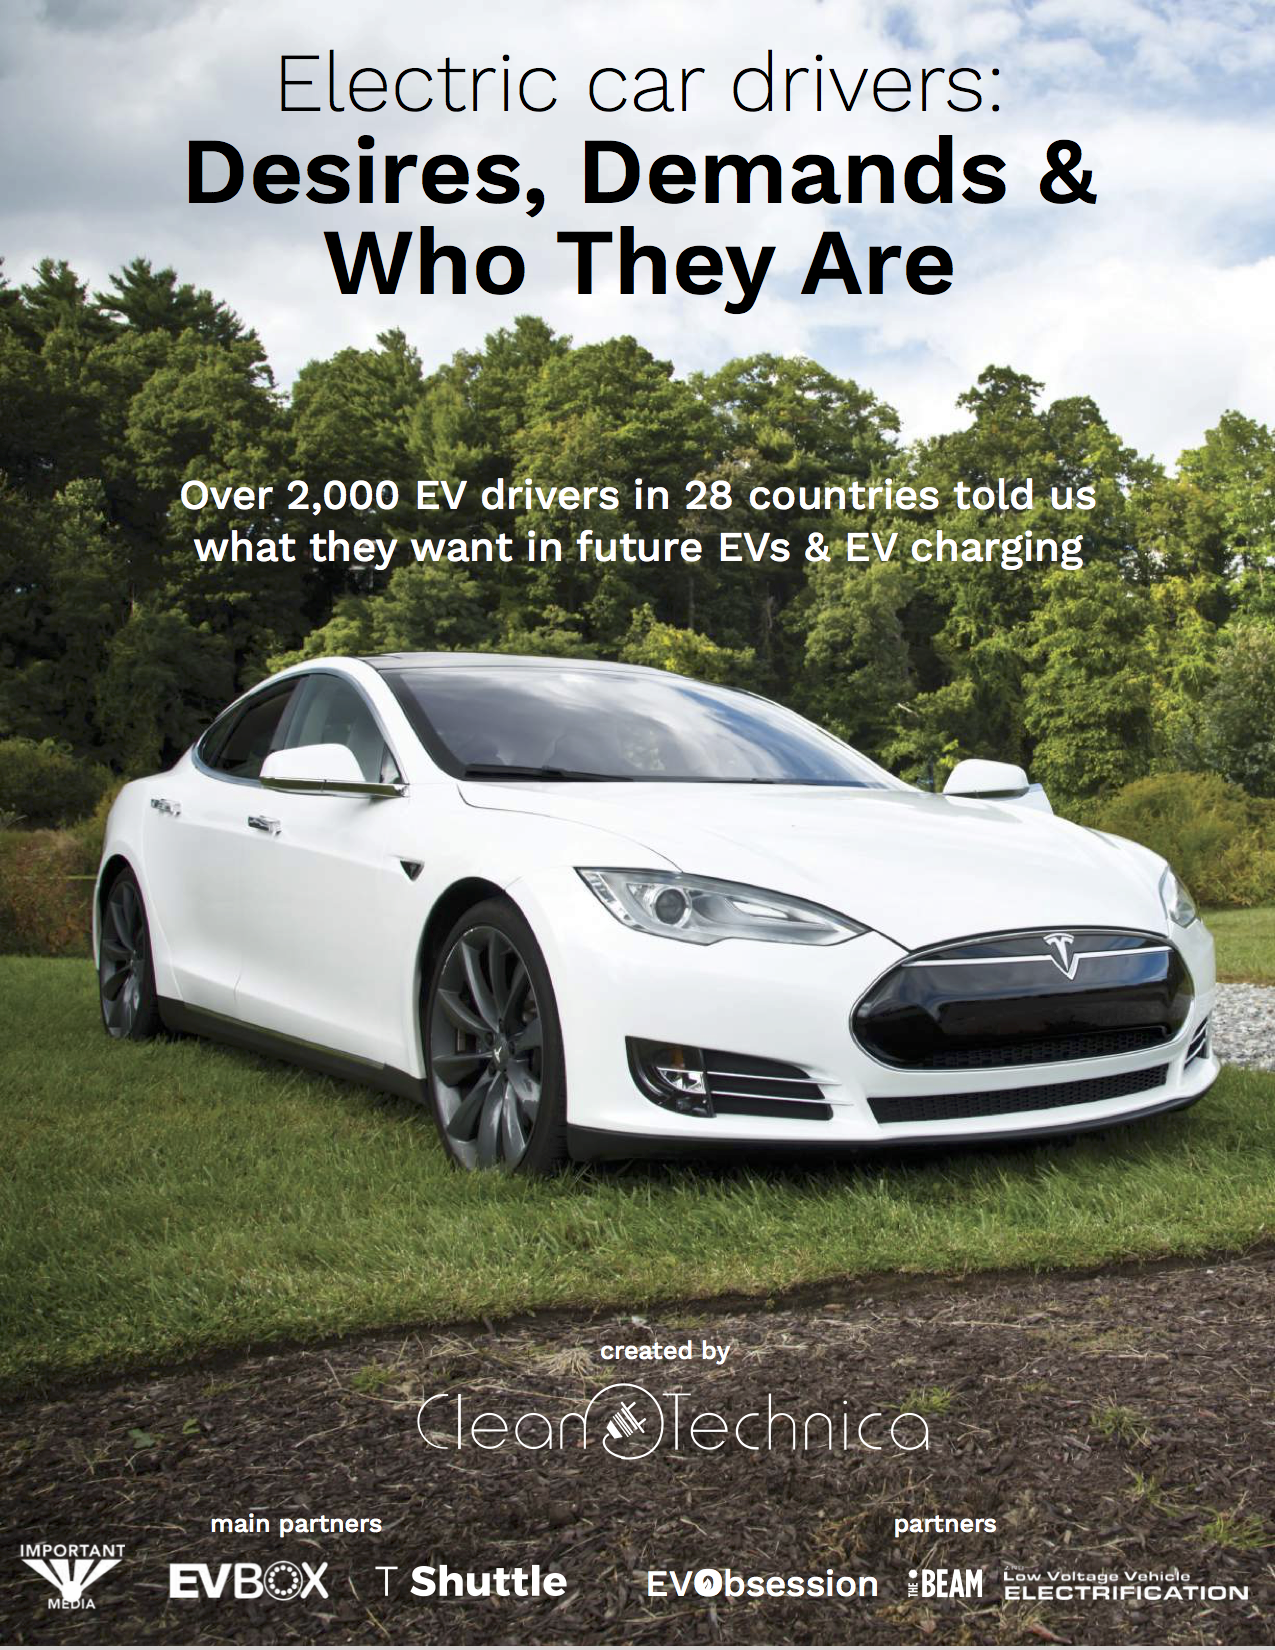 The World S Leading Cleantech News And Ysis Website Announced Release Of Its Second Ev Report On May 3 2017 Electric Car Drivers Desires